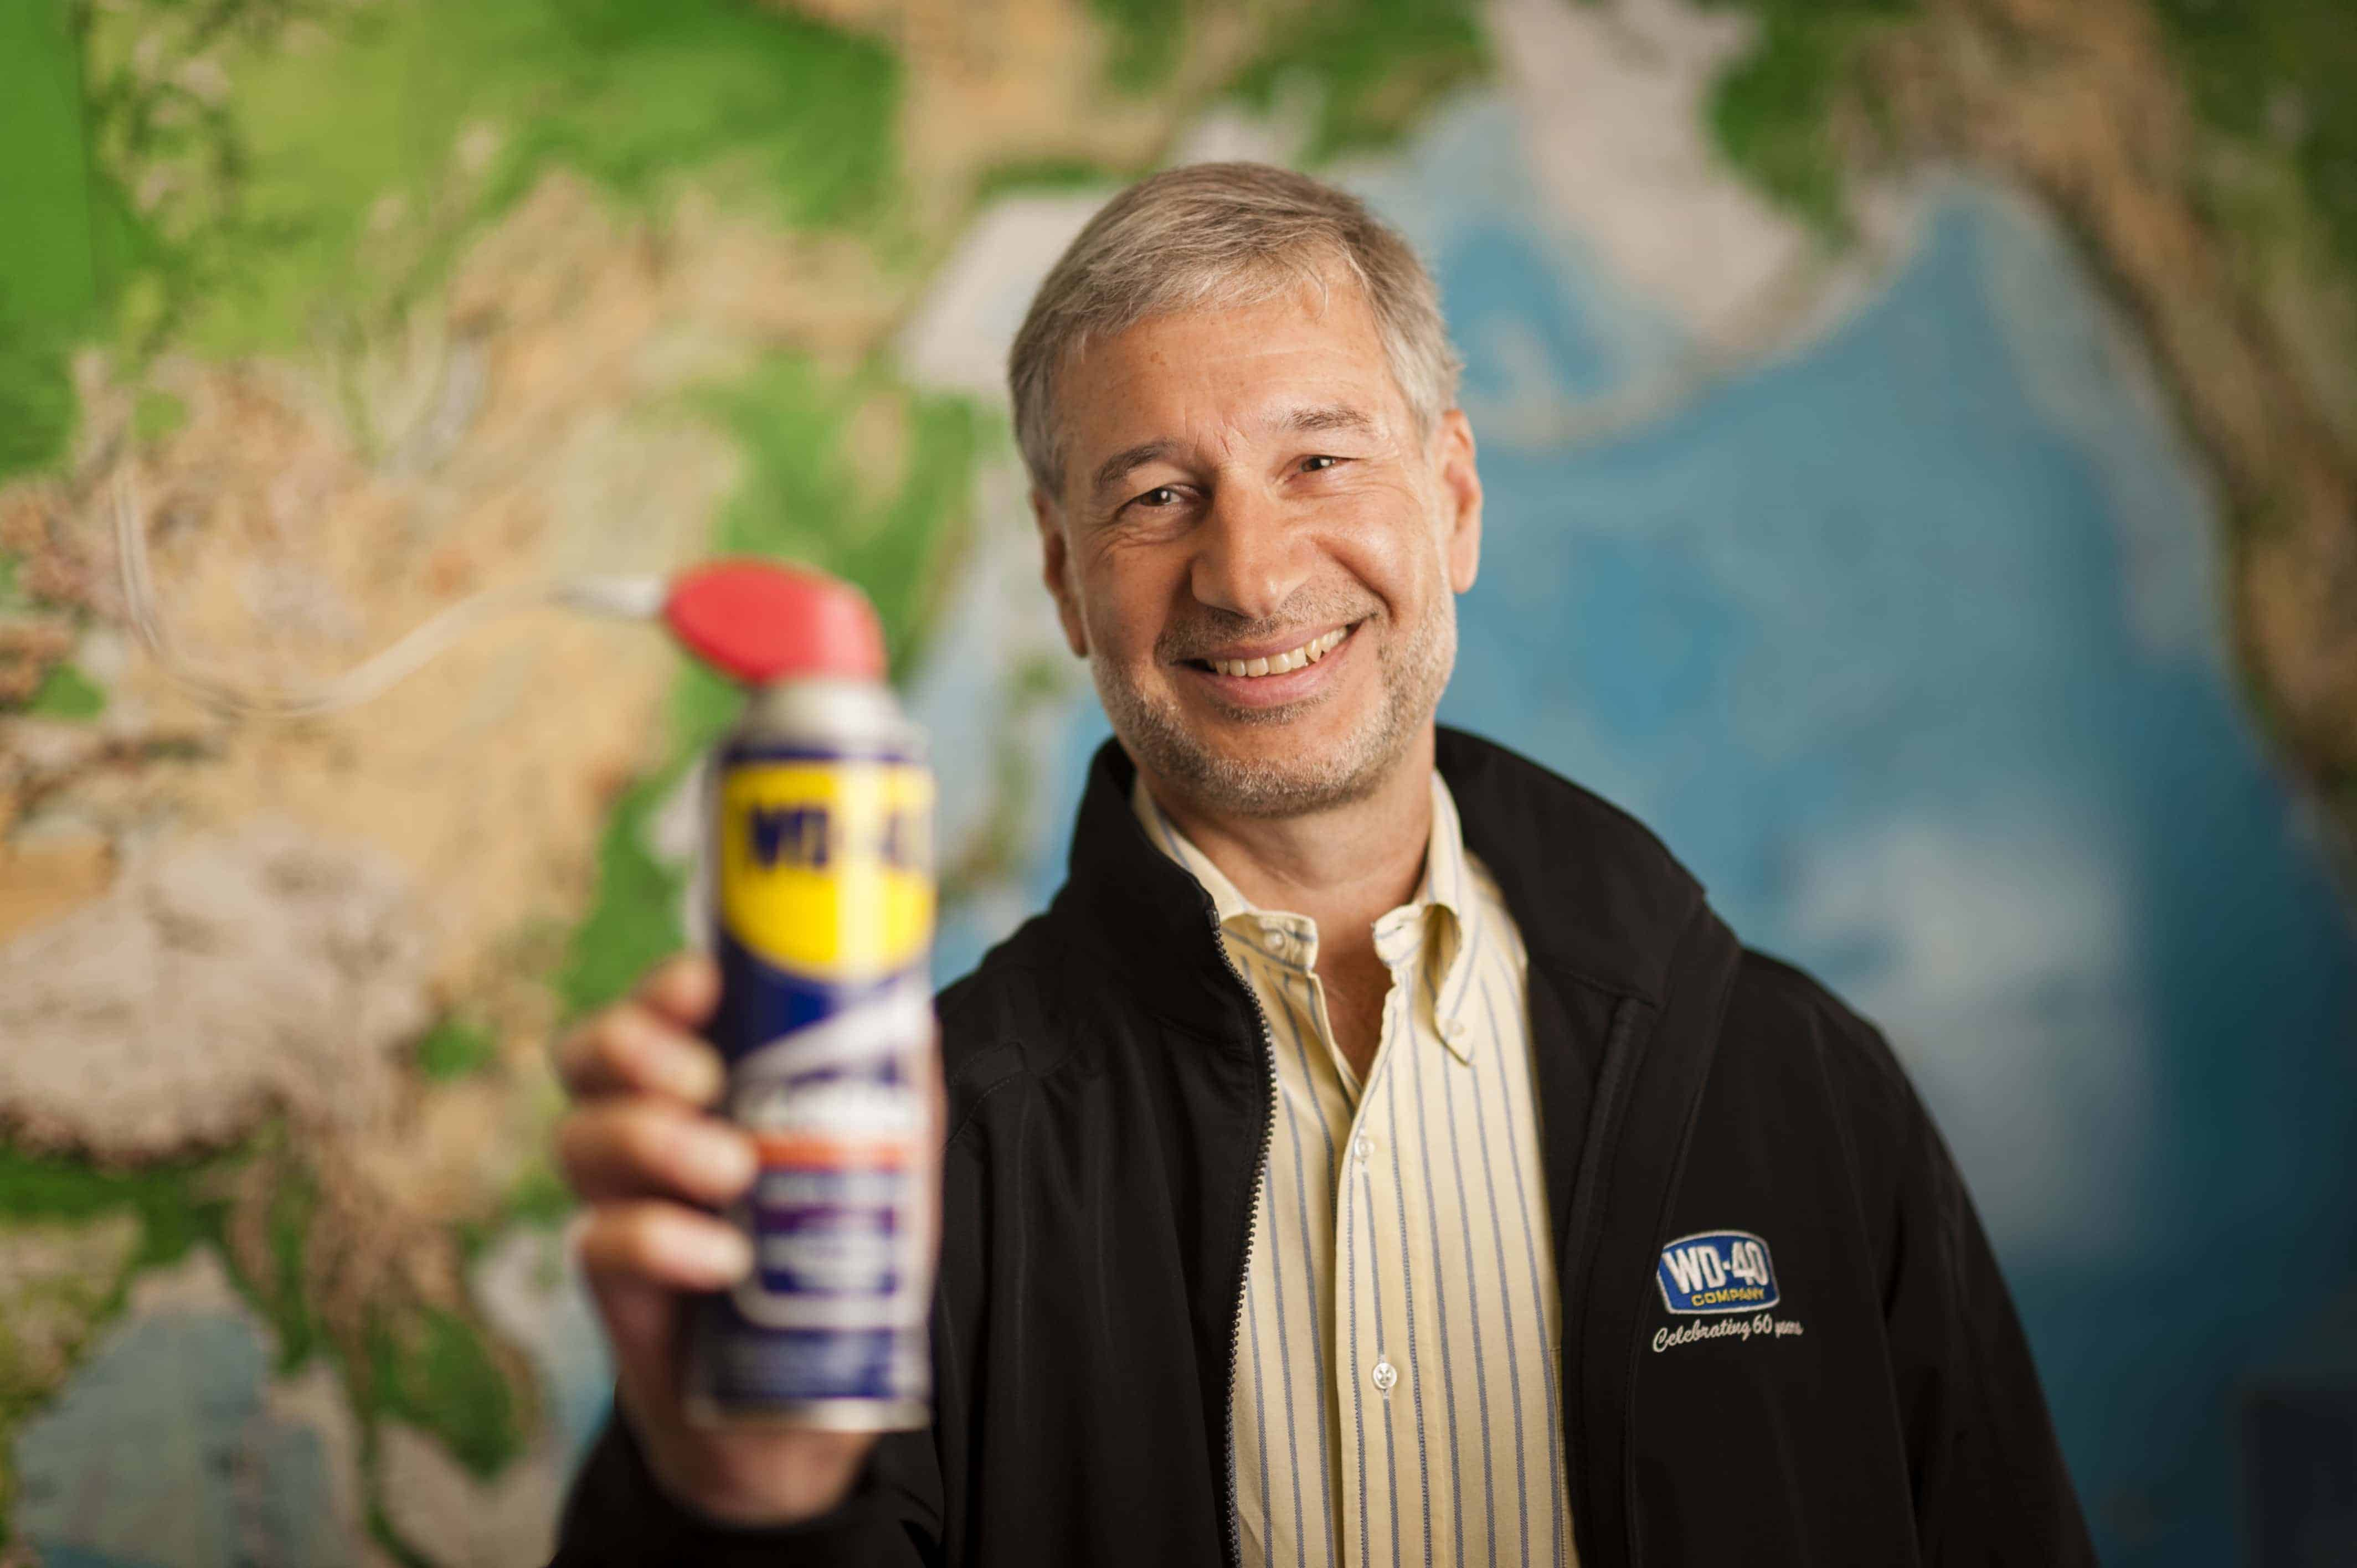 Rich holding WD-40 can